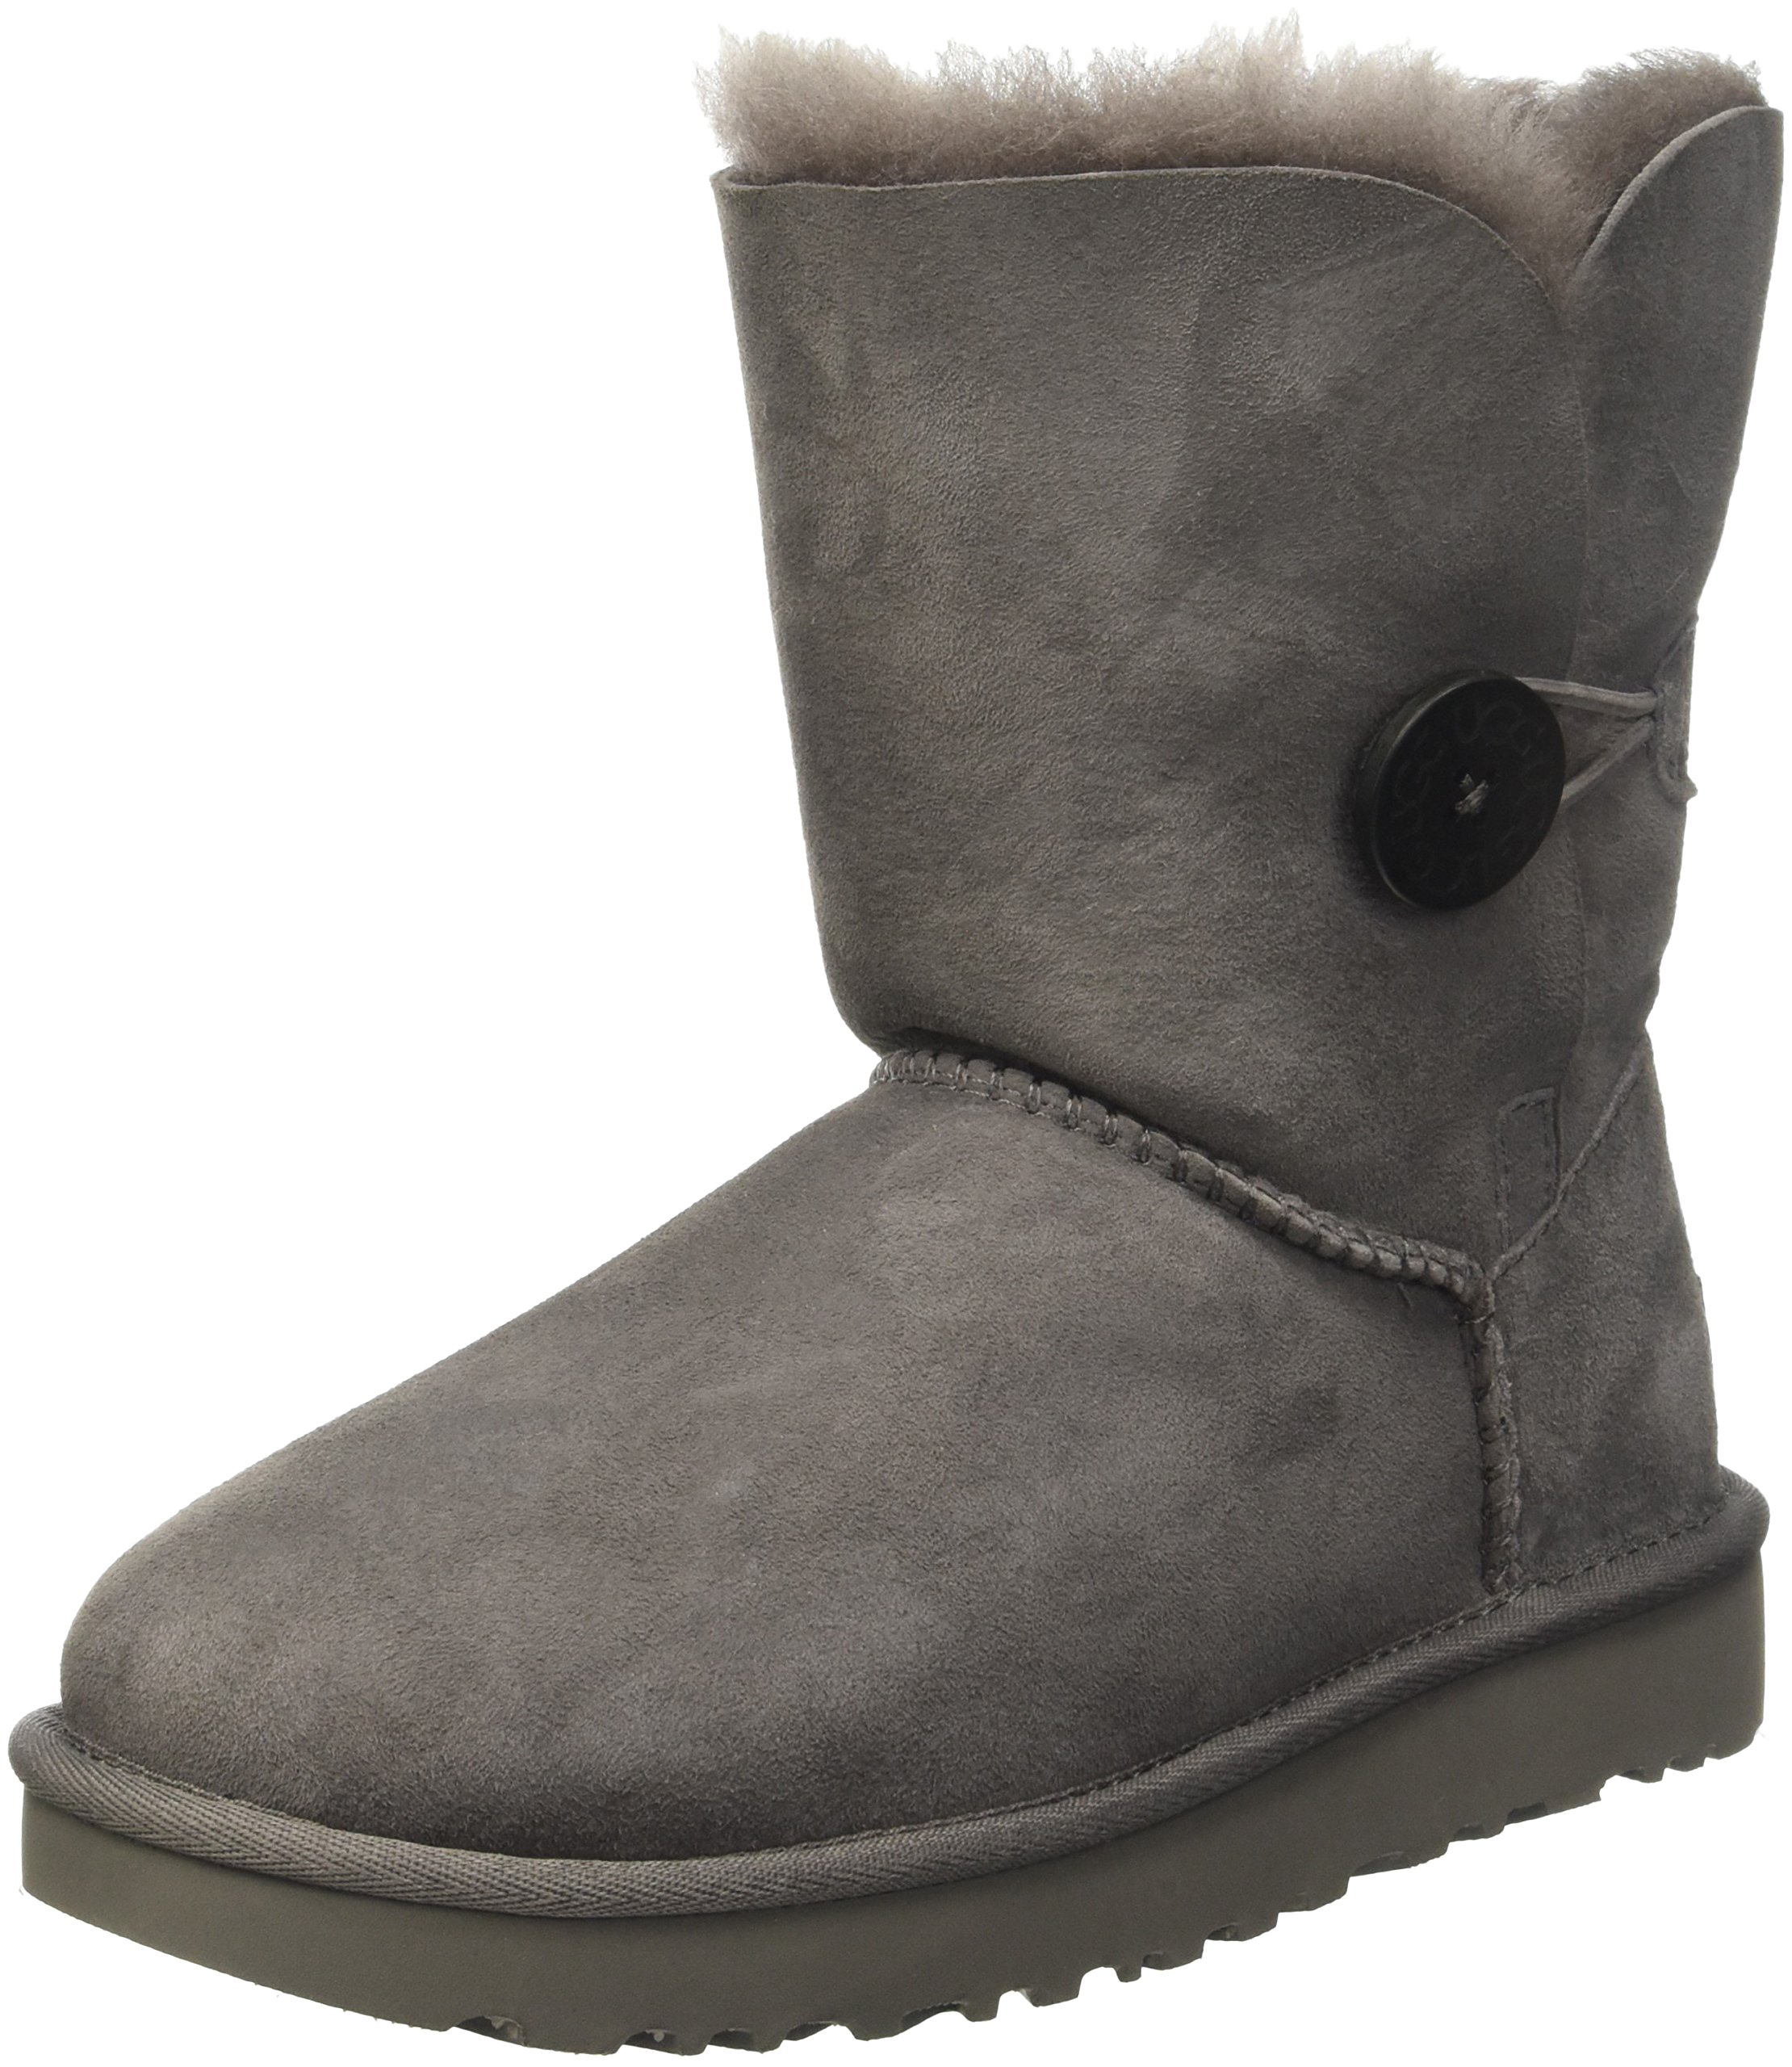 UGG Women's Bailey Button II Winter Boot, Grey, 5 B US